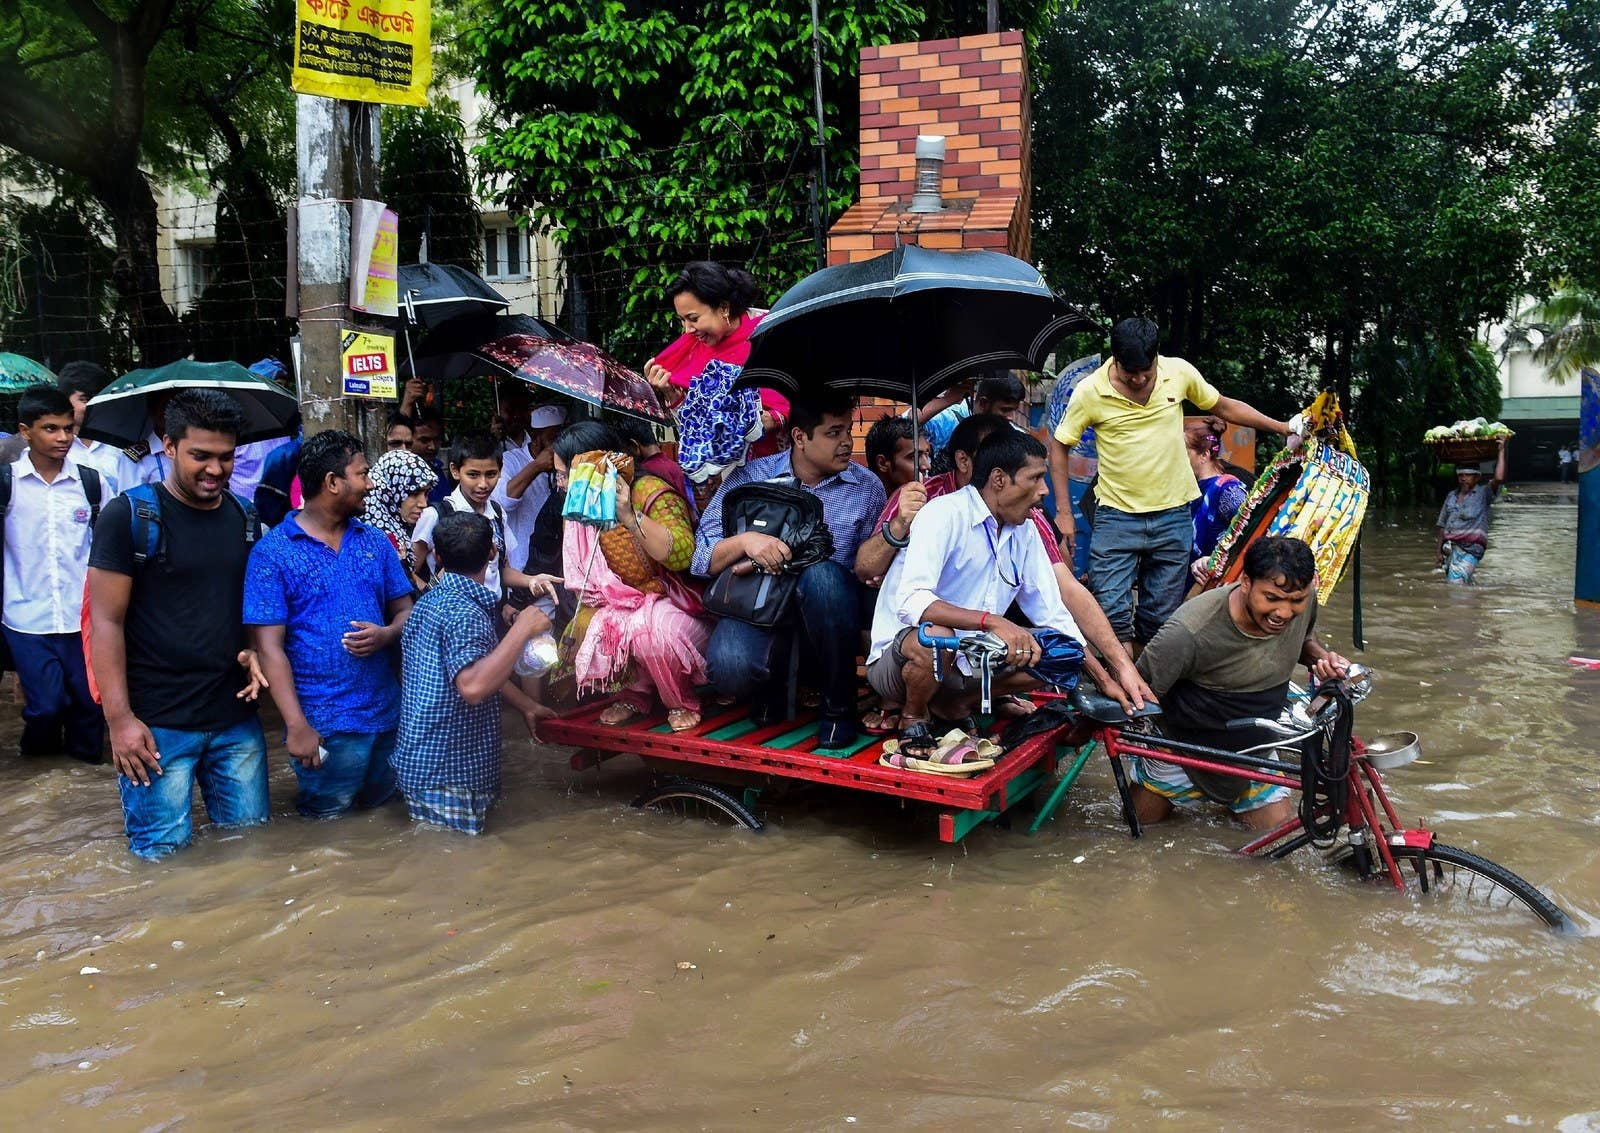 Bangladeshi commuters use a rickshaw to cross a flooded street in Dhaka.